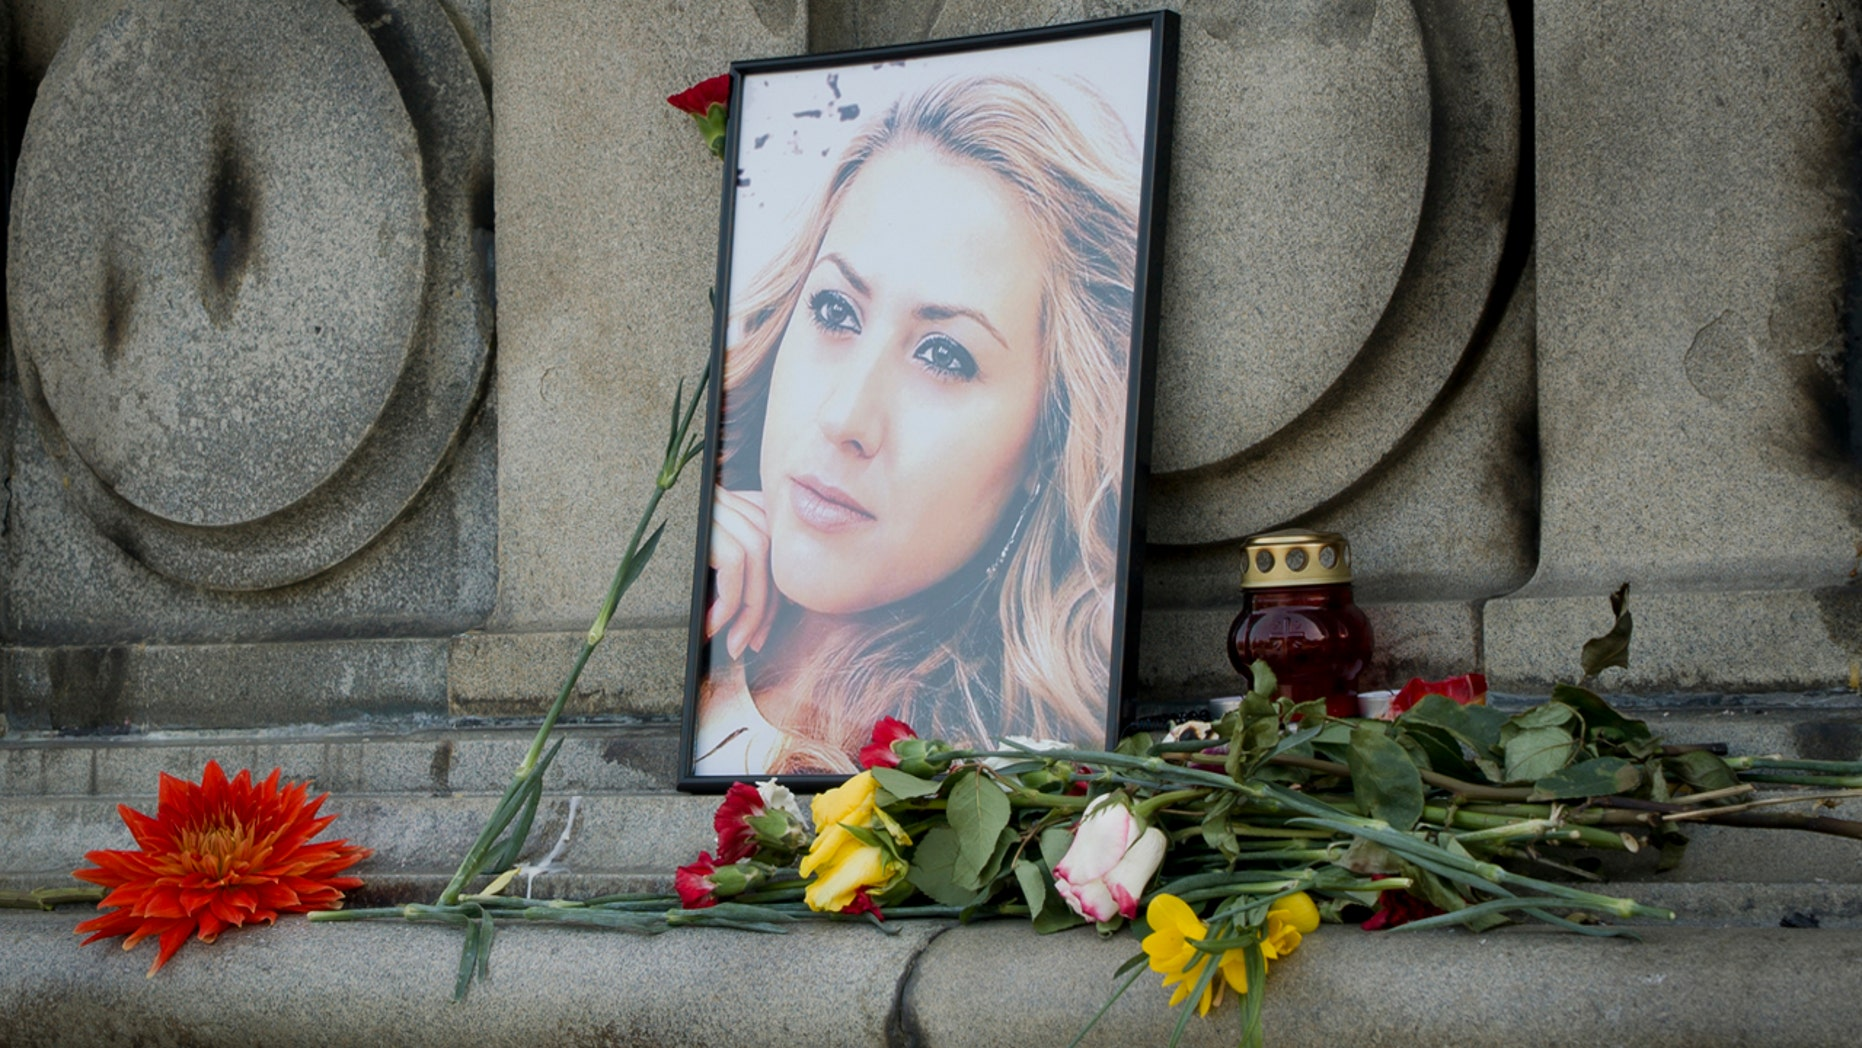 Man held over killing of Bulgarian journalist 'admits attacking her'